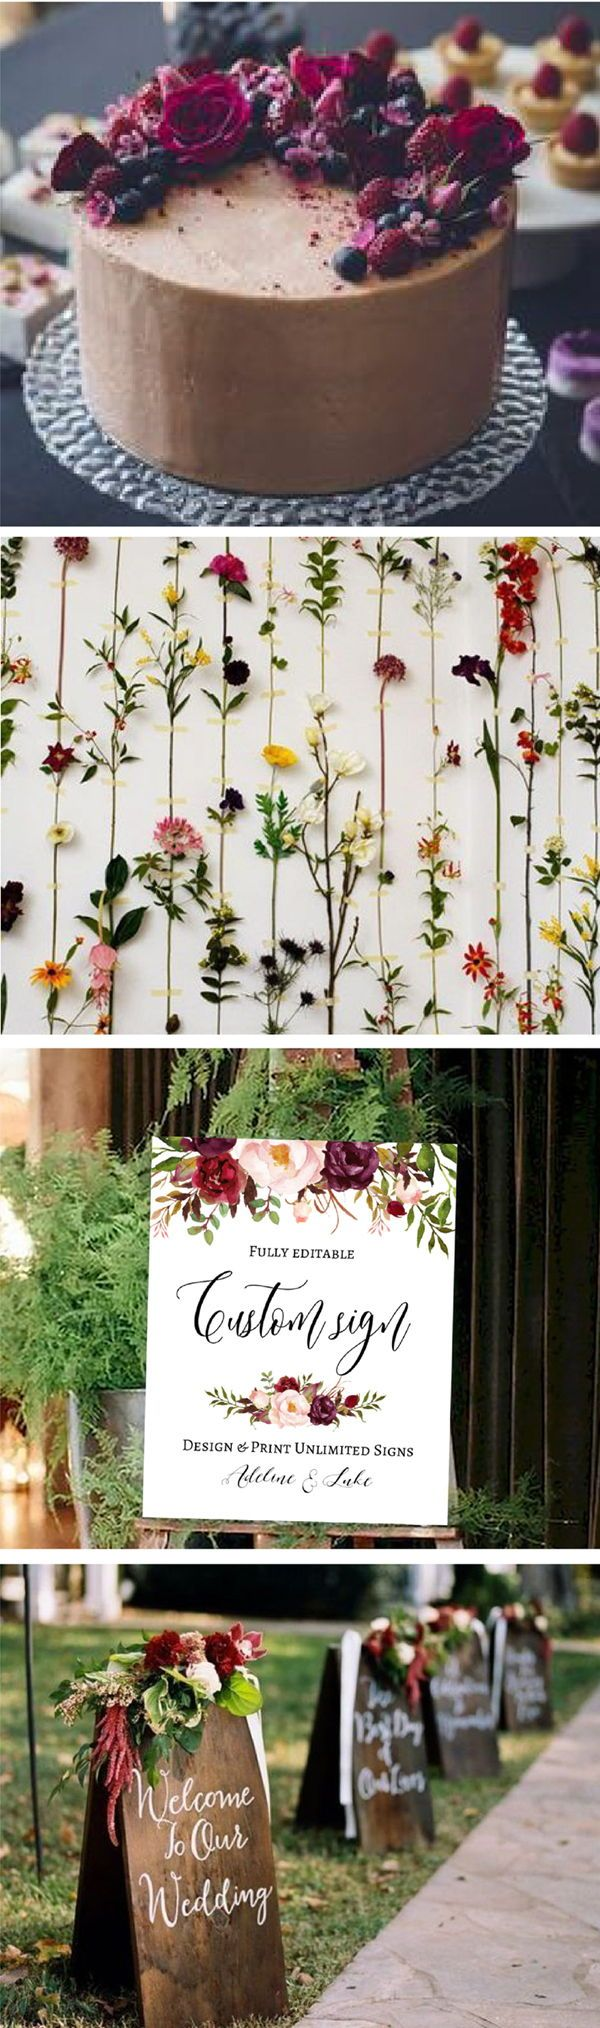 Perfect Fall & Autumn Wedding Sign! 100% Editable design, SAVE + Click later!